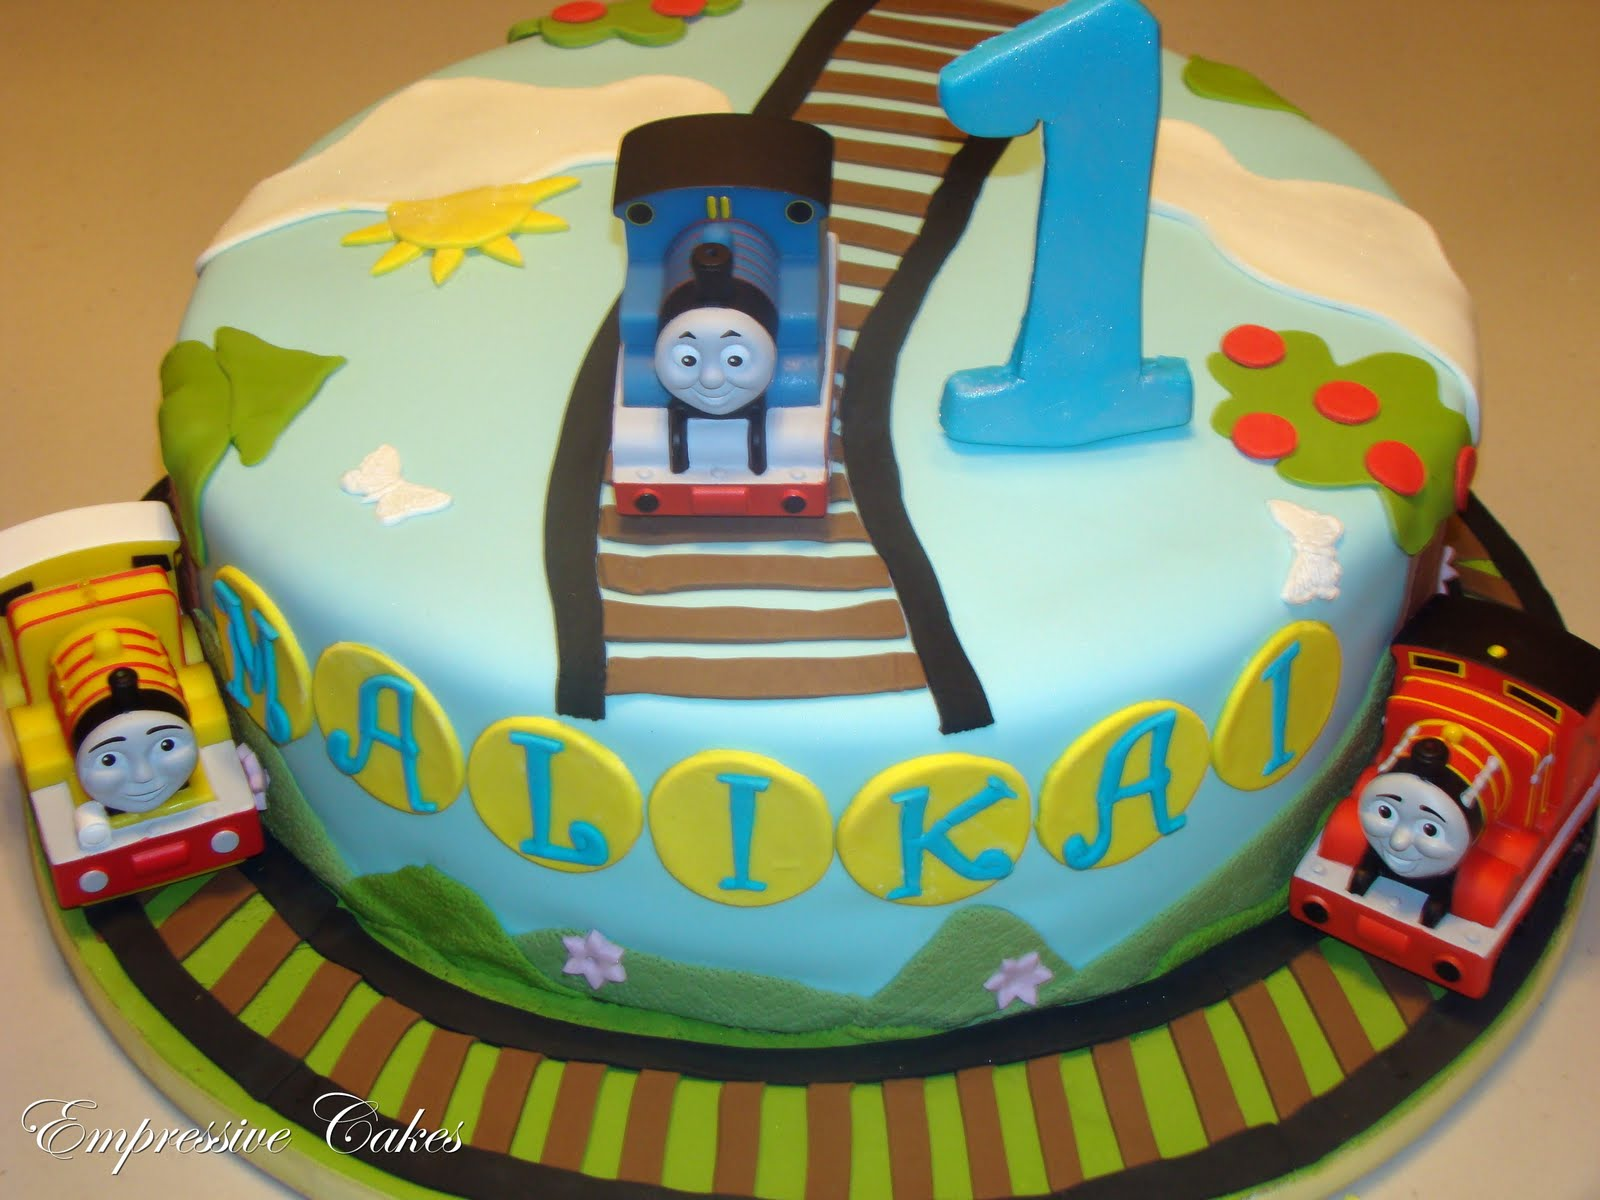 Cake Images Of Thomas The Train : Empressive Cakes: Thomas the Tank Engine Cake